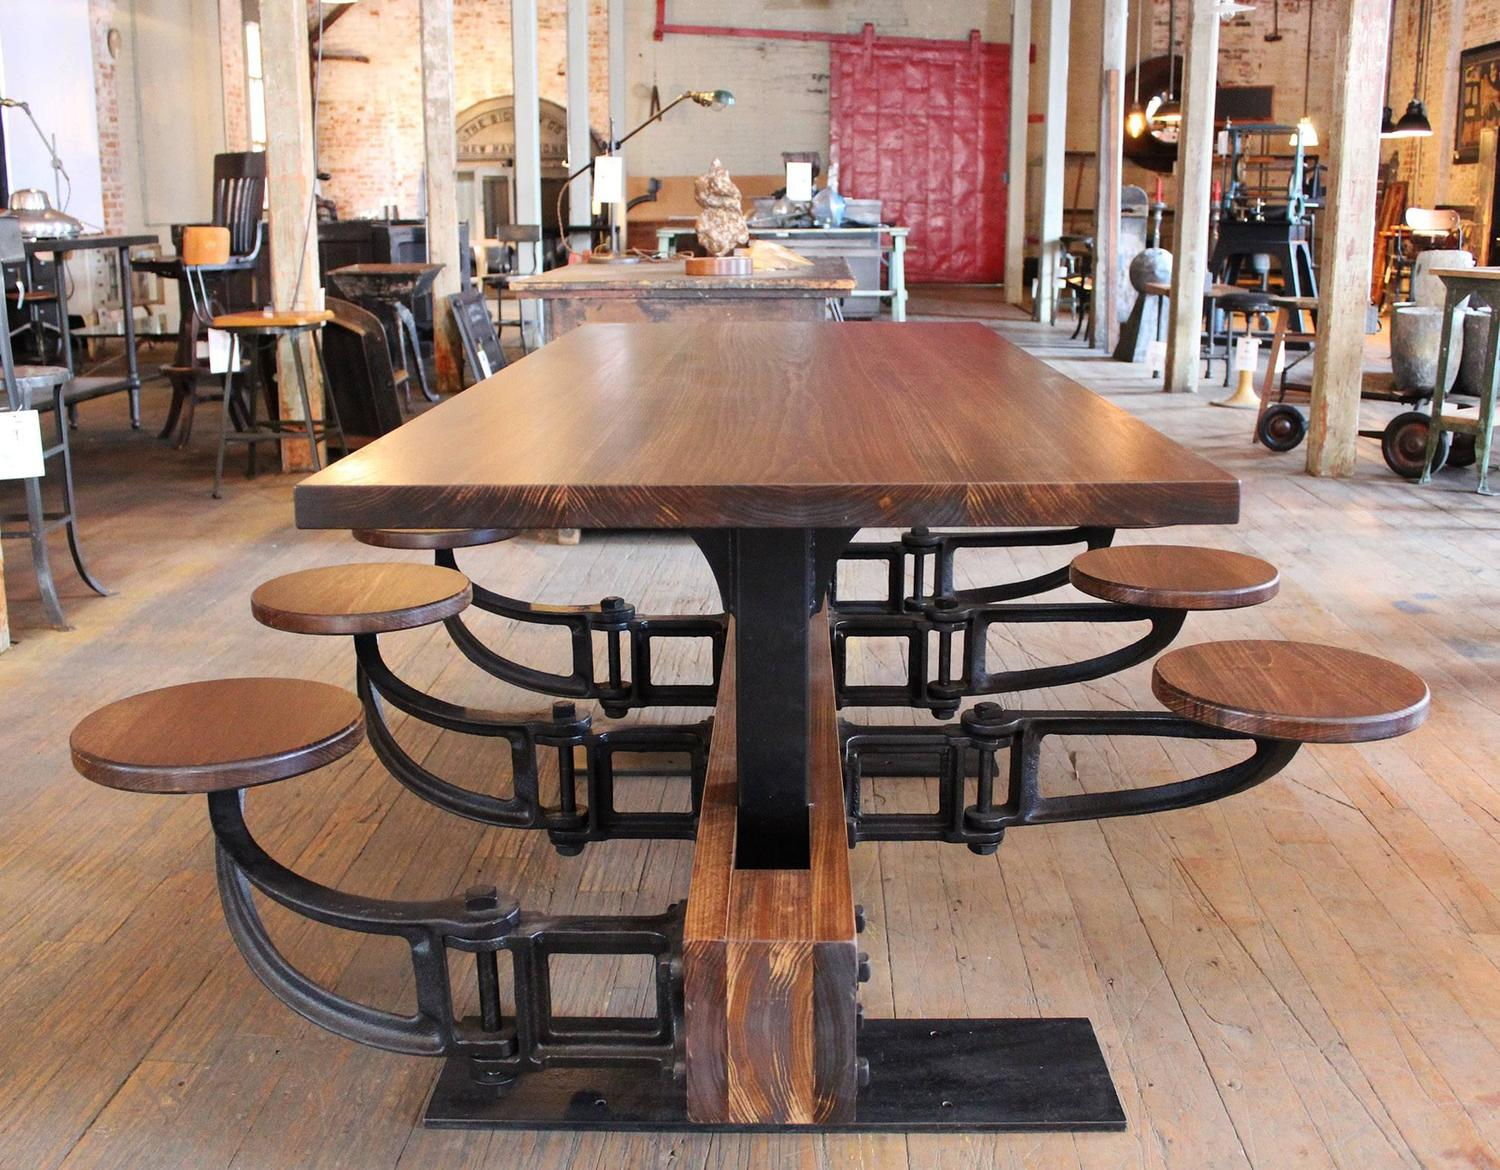 Vintage Industrial Iron Cafeteria Swing Out Seat Dining